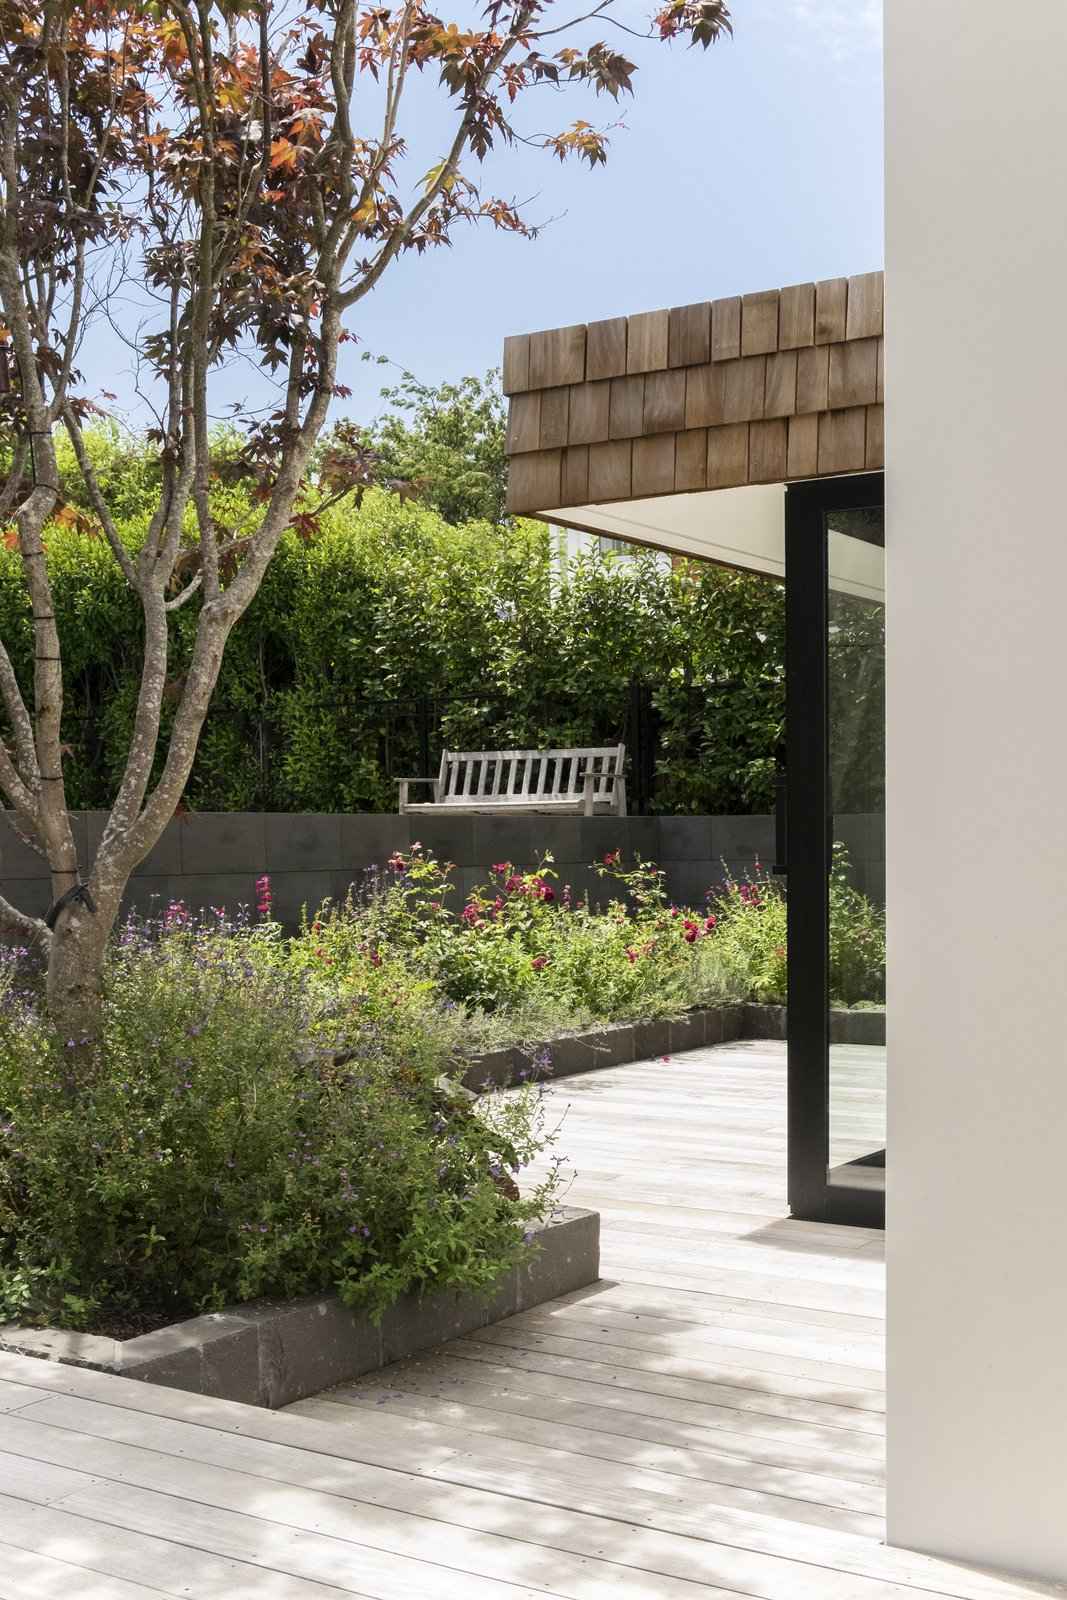 The swimming pool is articulated as another architectural volume, defining an edge of the courtyards formed between the house and pool.